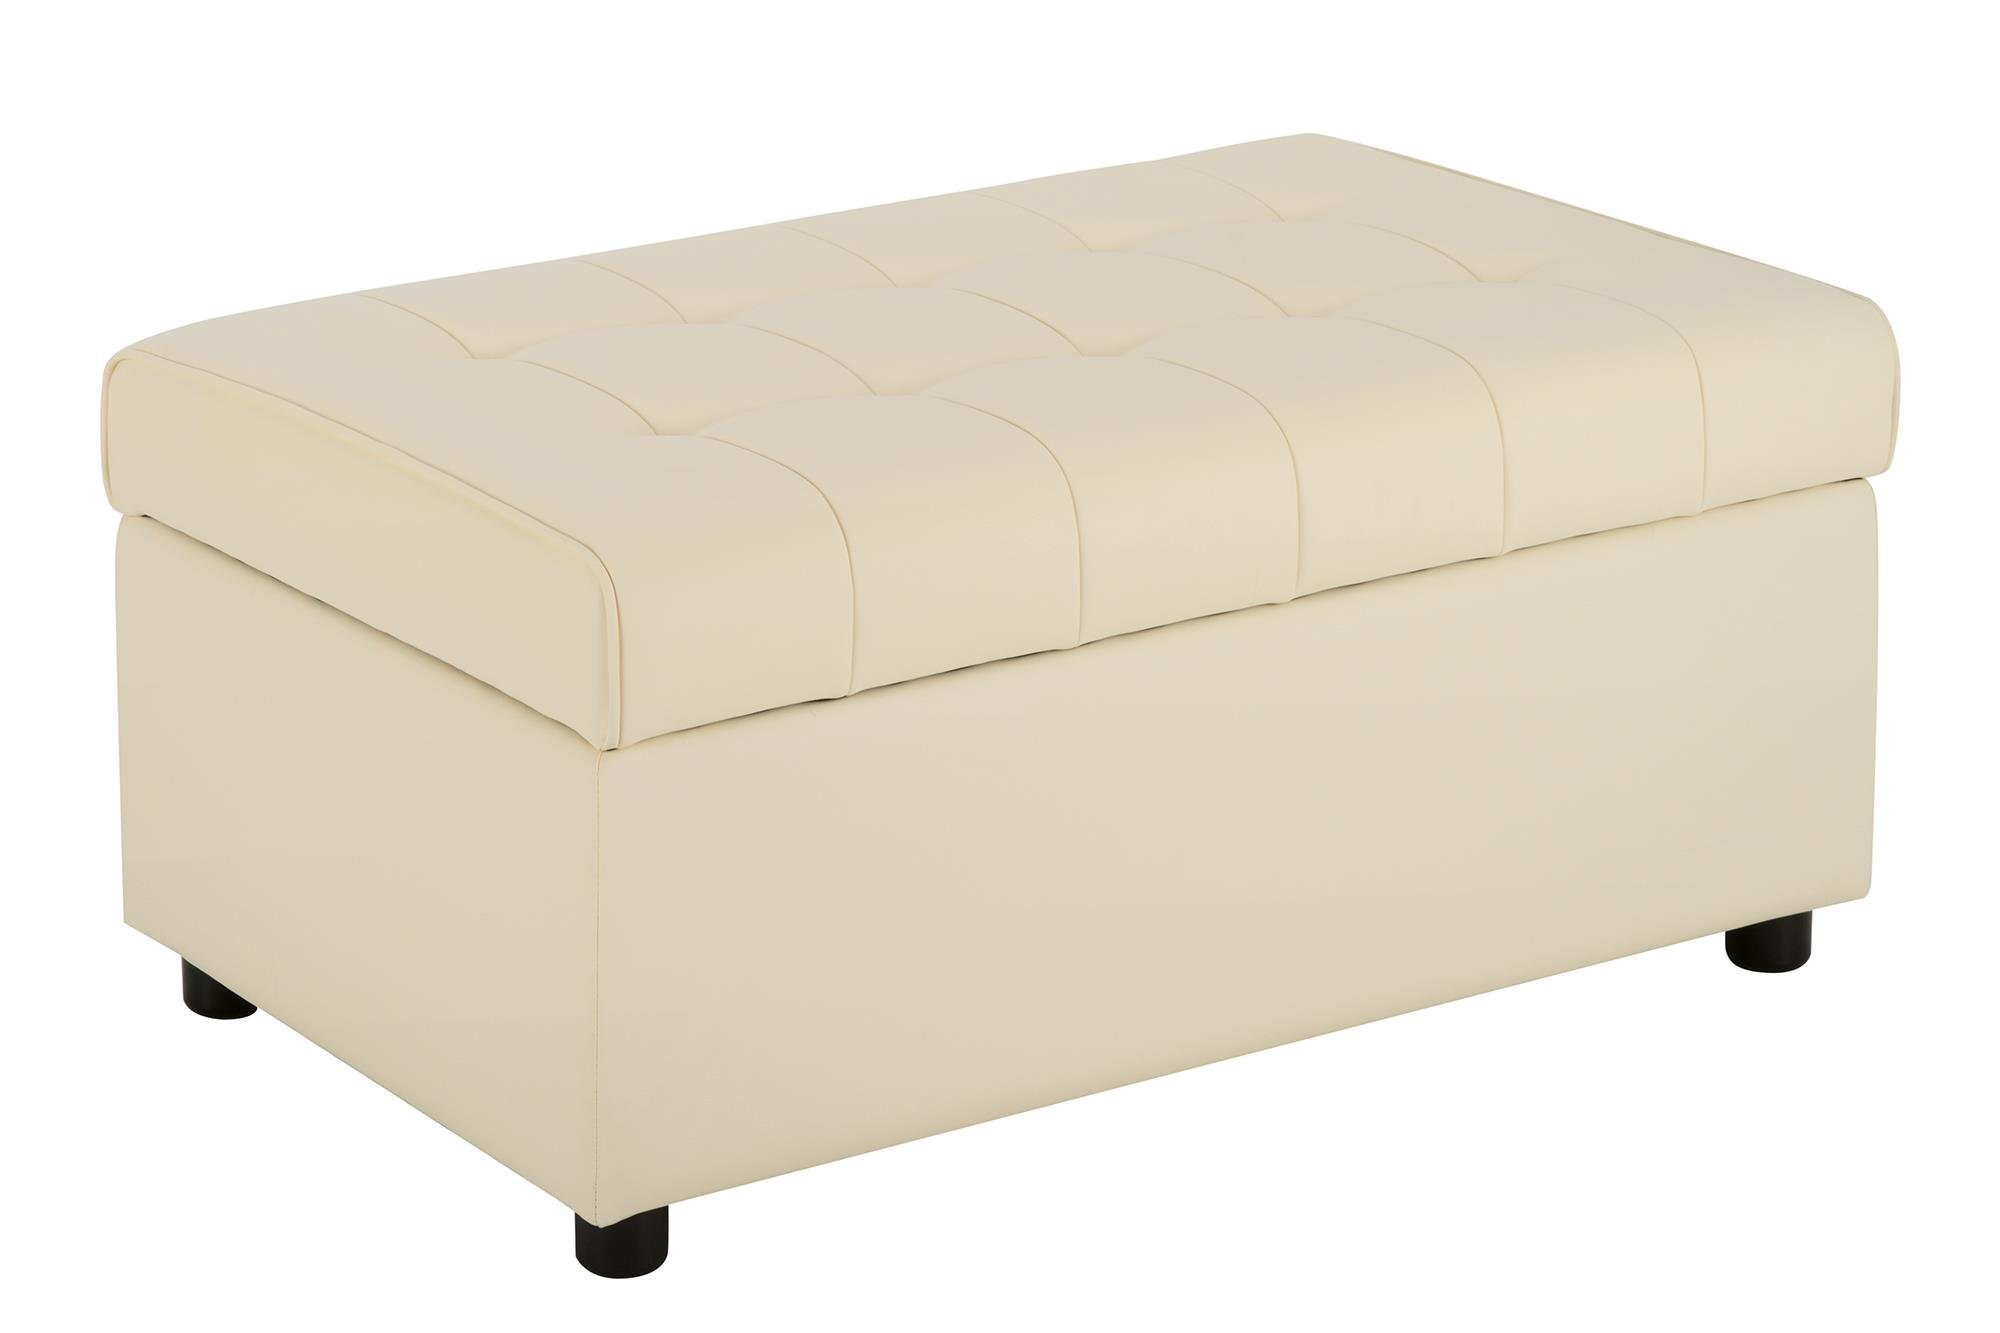 DHP Emily Rectangular Storage Ottoman, Modern Look with Tufted Design, Lightweight, Vanilla Faux Leather